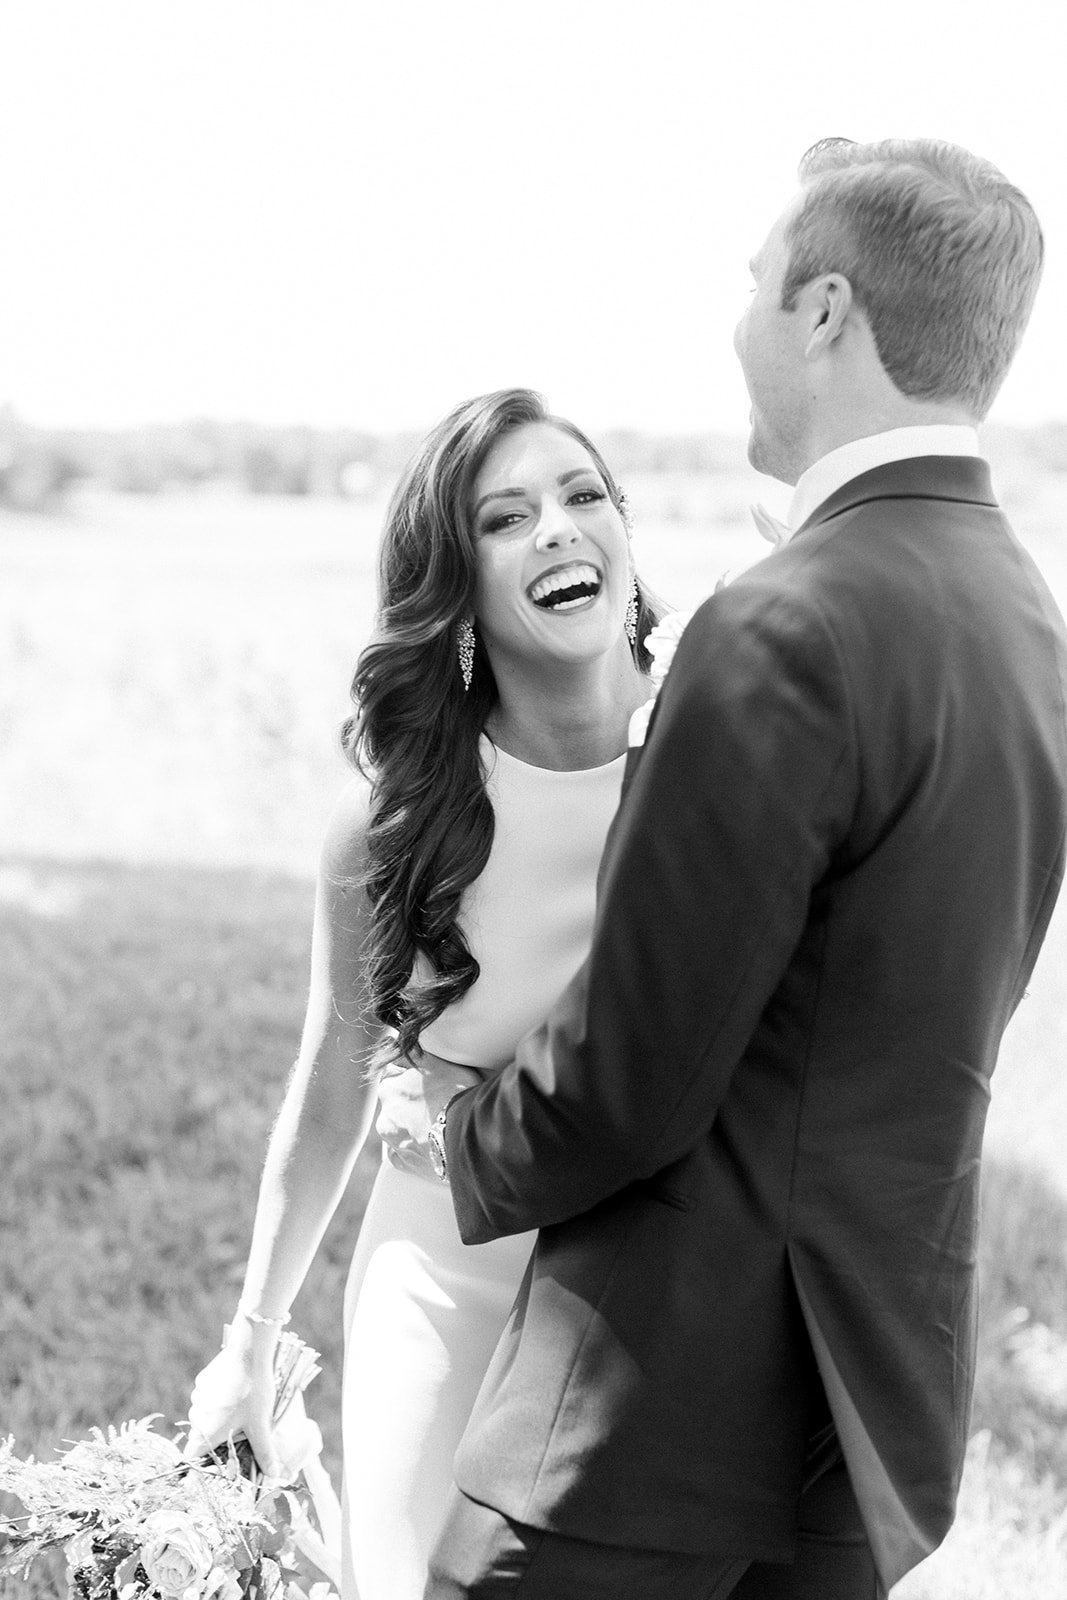 Michelle+Jimmy-jennplumlee-photo-35